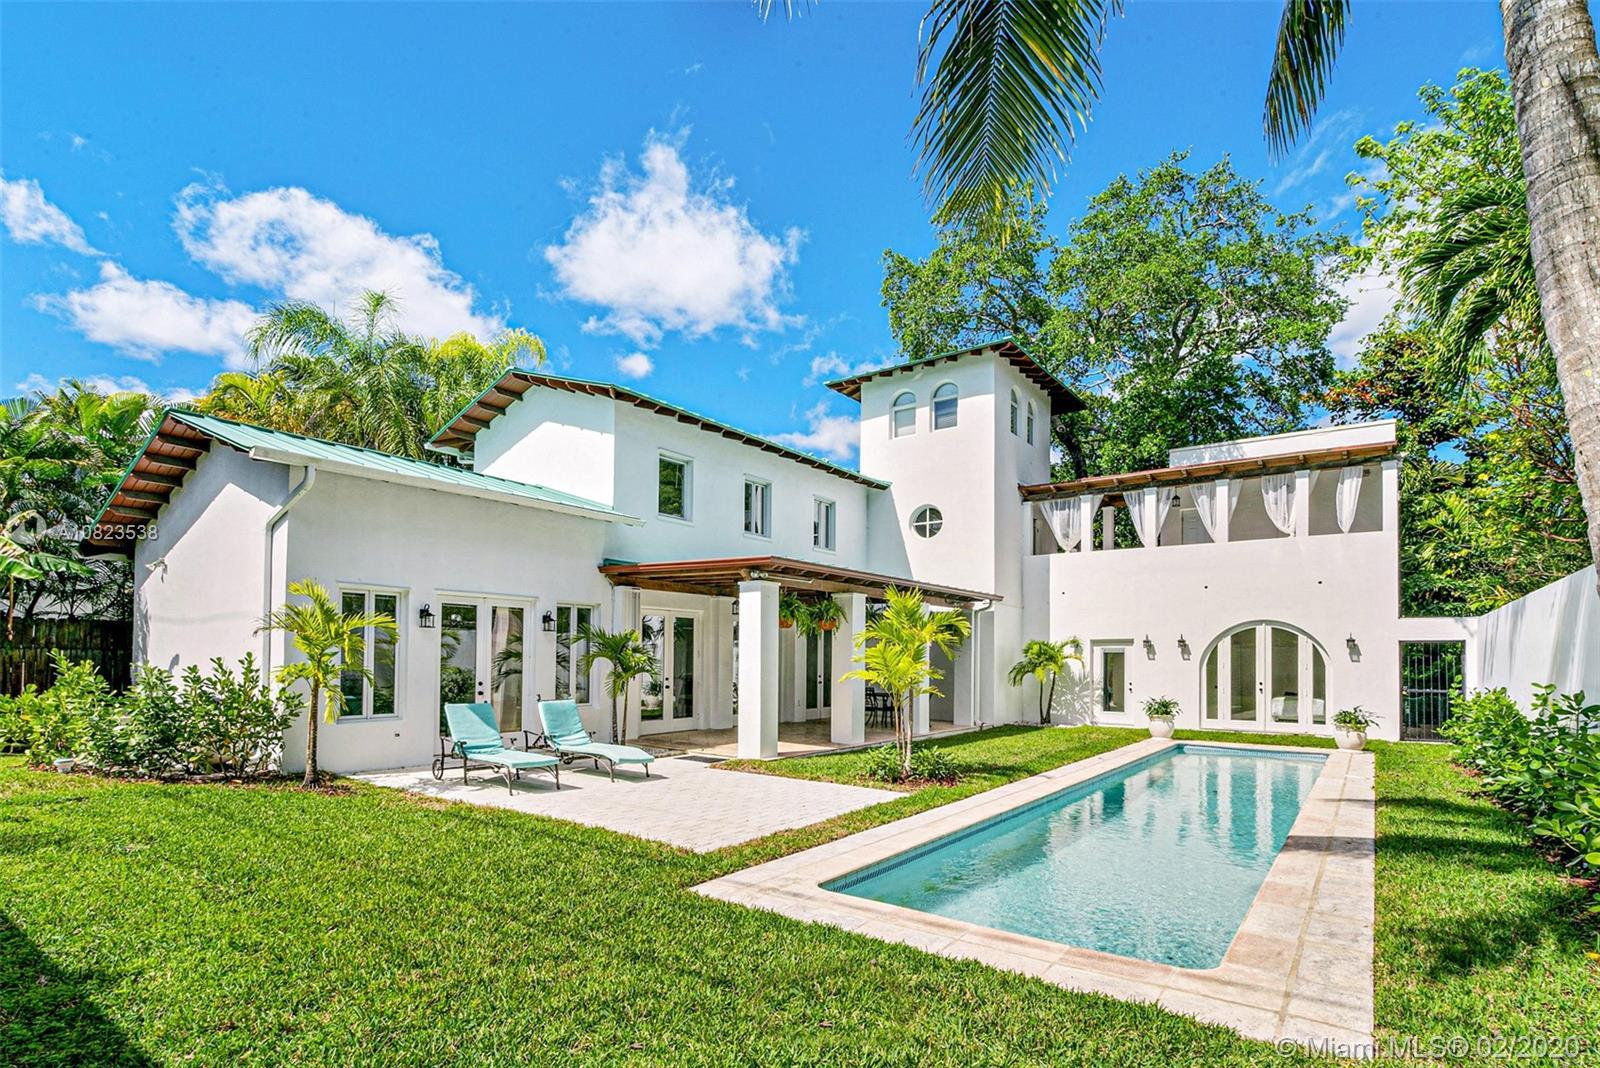 Updated elegant, majestic 3 story 5bdrm/4 bath courtyard villa sits behind a walled & gated main ent